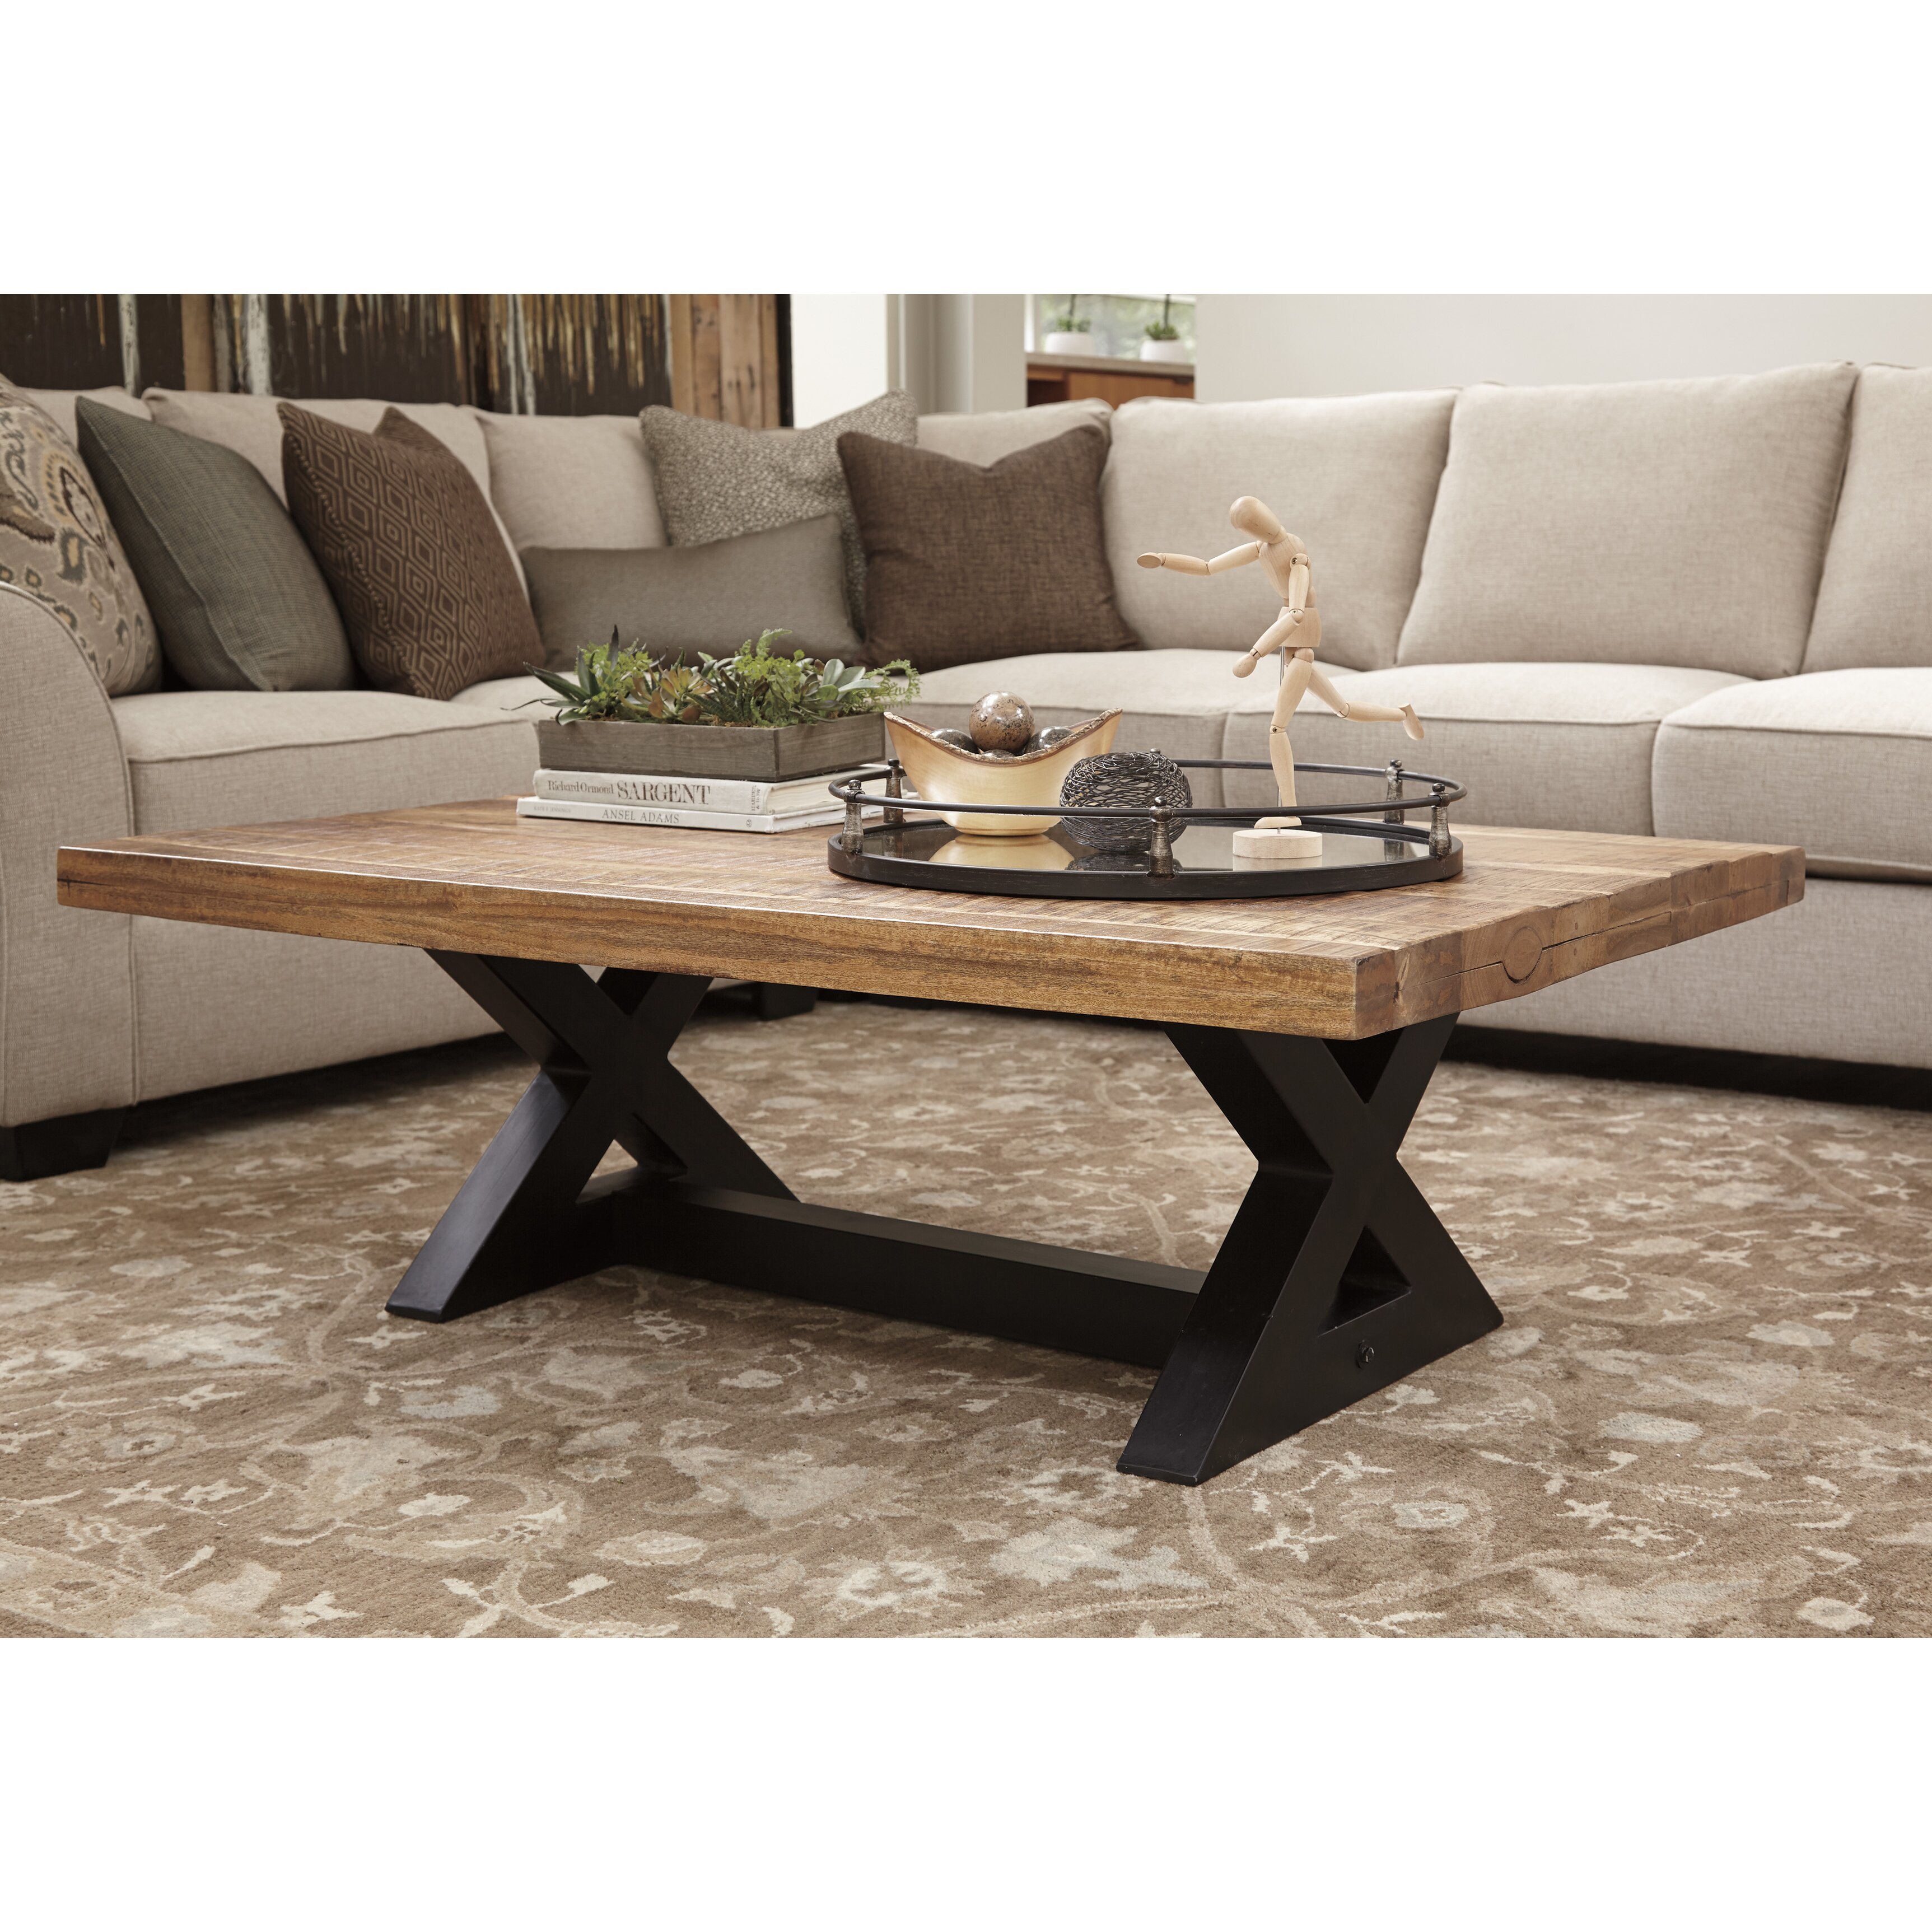 Ashley Furniture Distressed Coffee Table: Signature Design By Ashley Wesling Coffee Table & Reviews